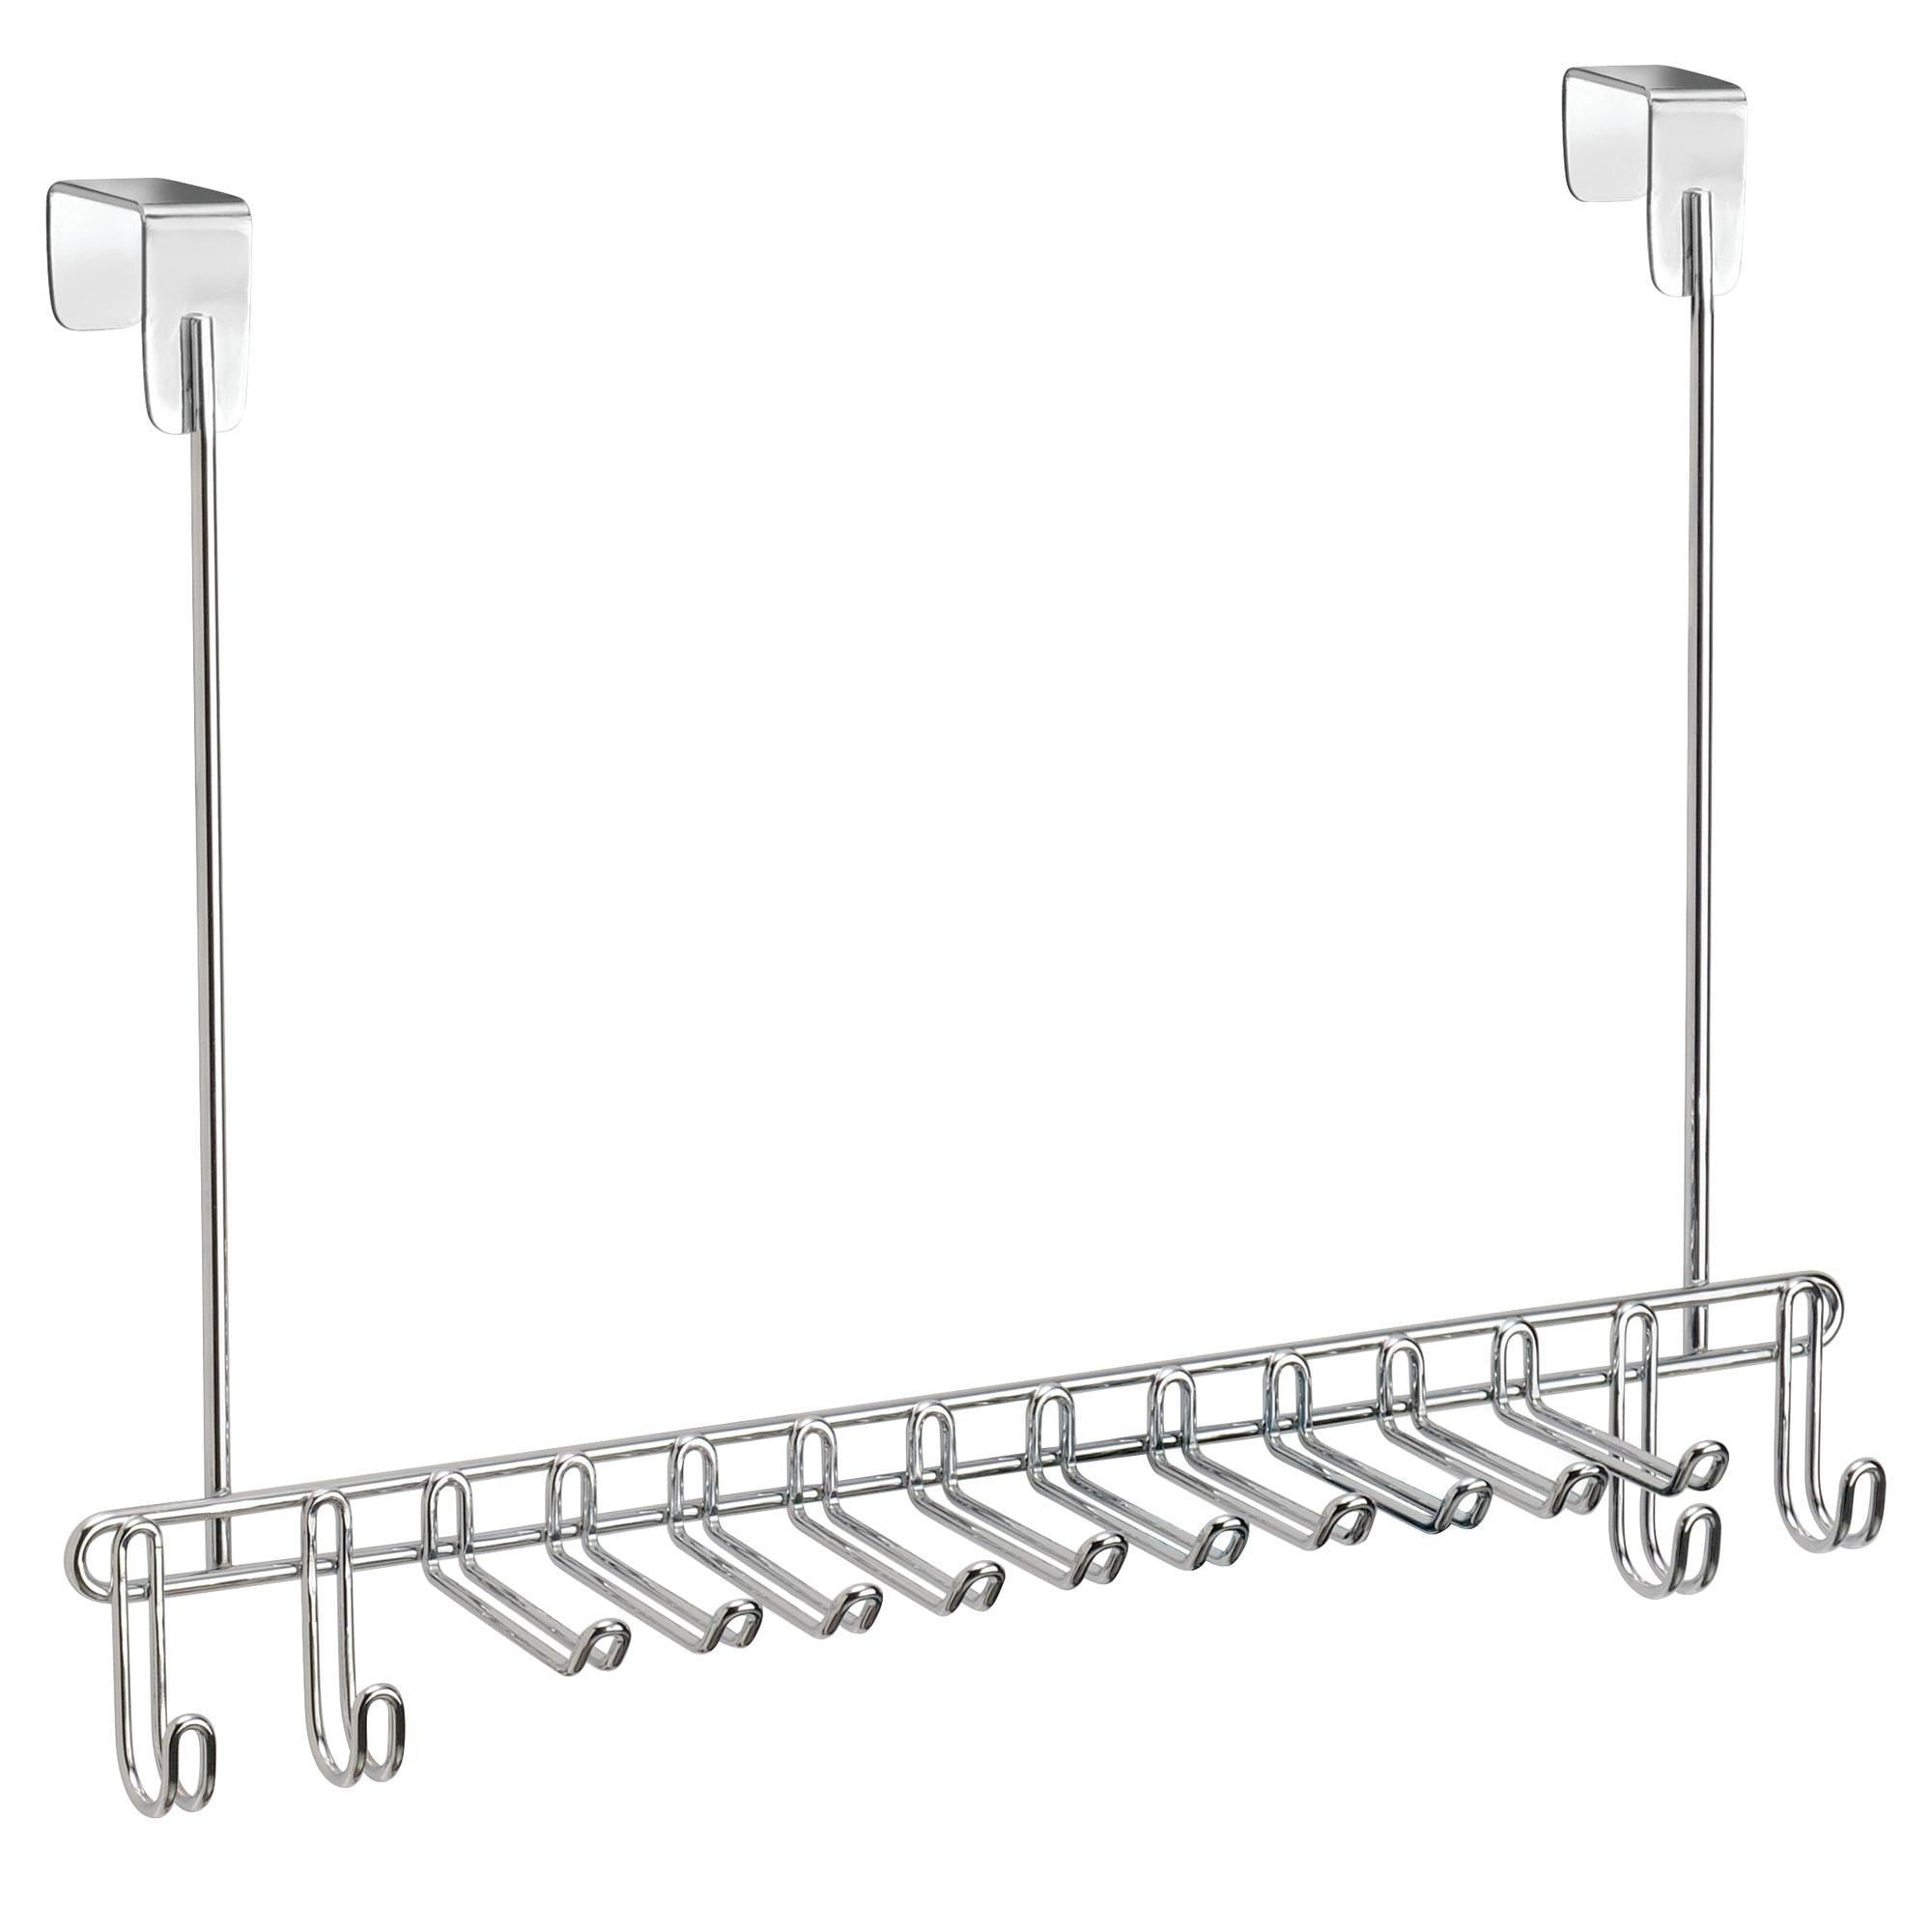 Shop here mdesign metal over door hanging closet storage organizer rack for mens and womens ties belts slim scarves accessories jewelry 4 hooks and 10 vertical arms on each 2 pack chrome 1